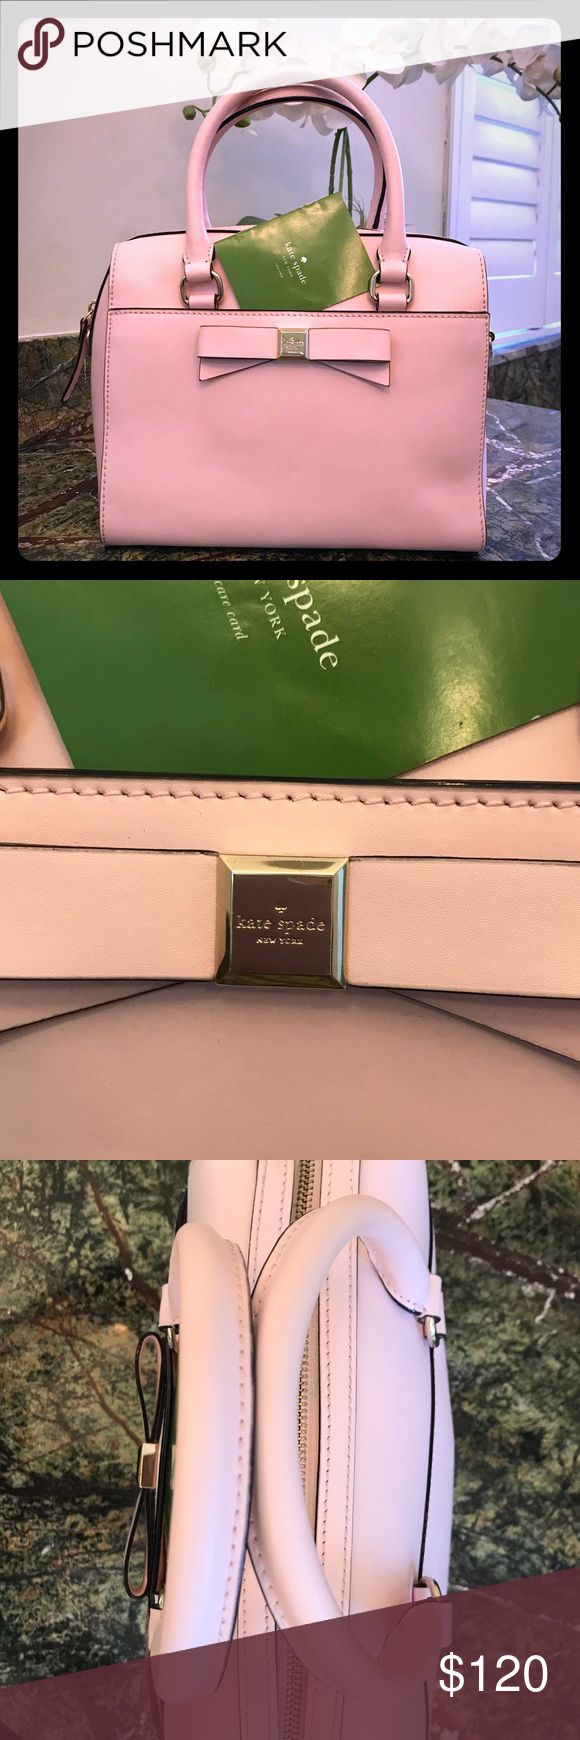 ♠️ Baby Pink Leather Bag Beautiful pink leather bag is the perfect size. This adorable bag is almost flawless! There is a scratch or two on the logo and the interior lining has a light pink spot that look like it may be blush, should be easily cleaned. Open to reasonable offers. Bundle and save on shipping. kate spade Bags